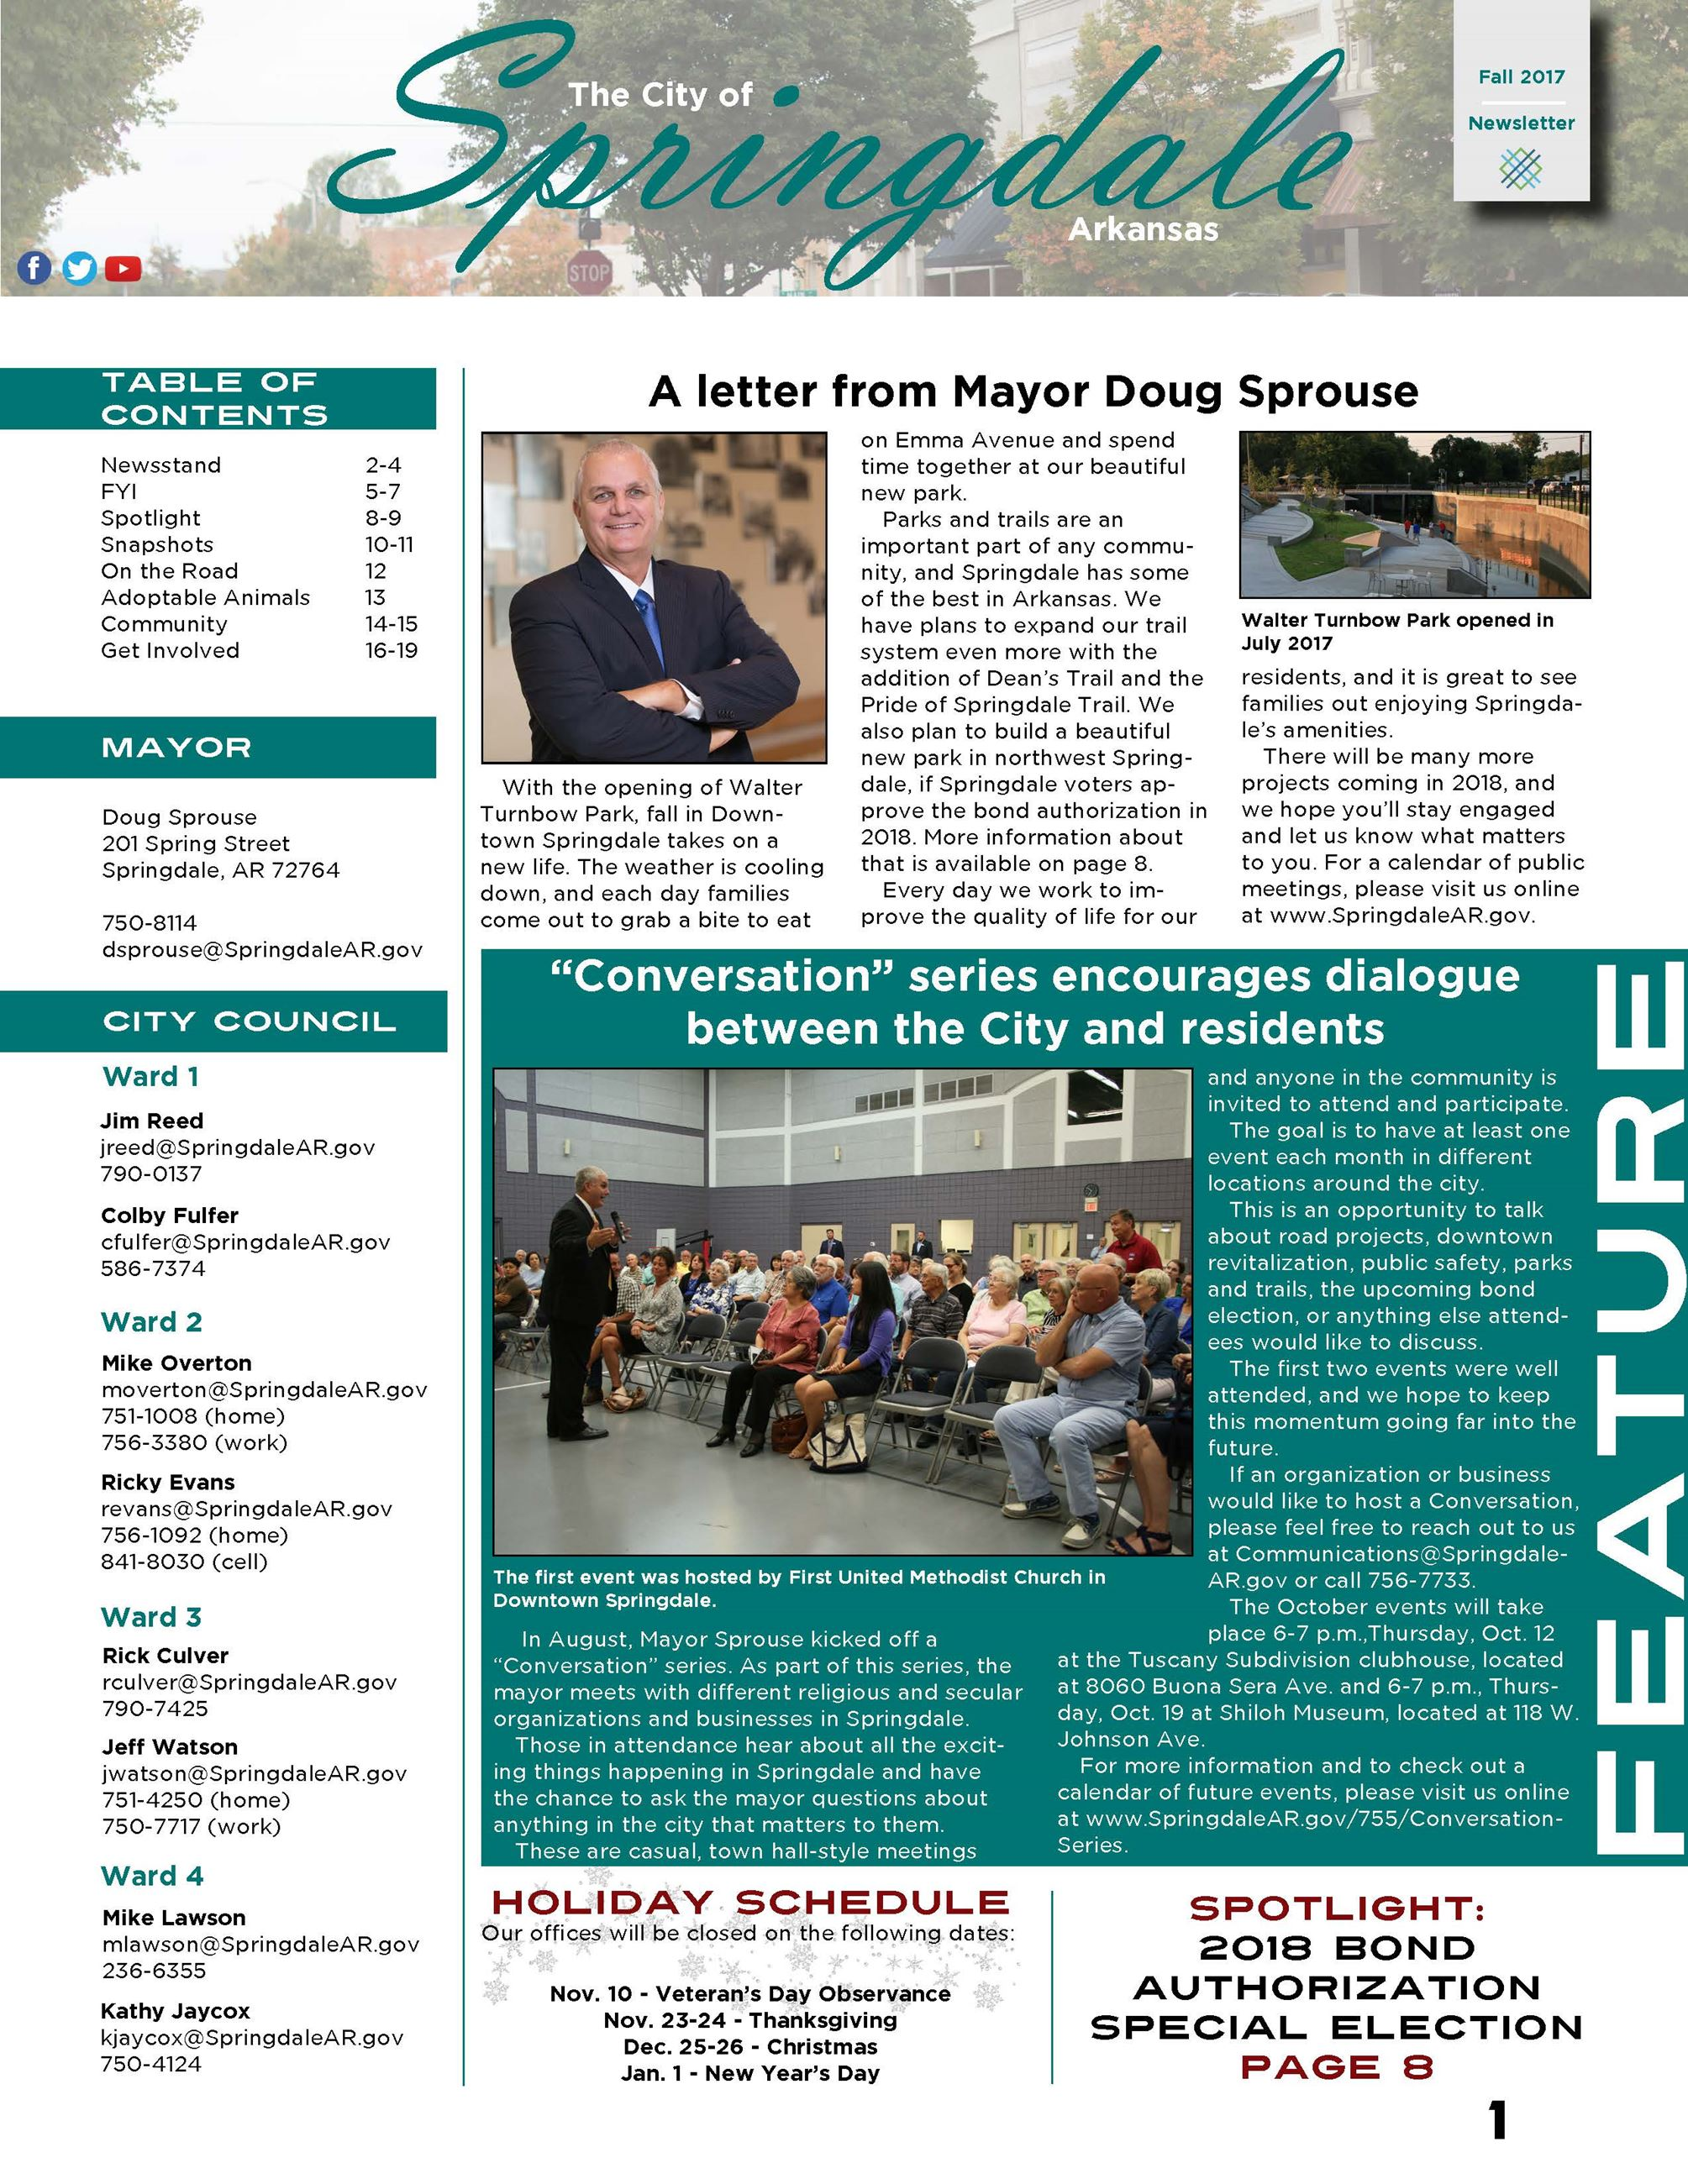 Fall 2017 Front Page